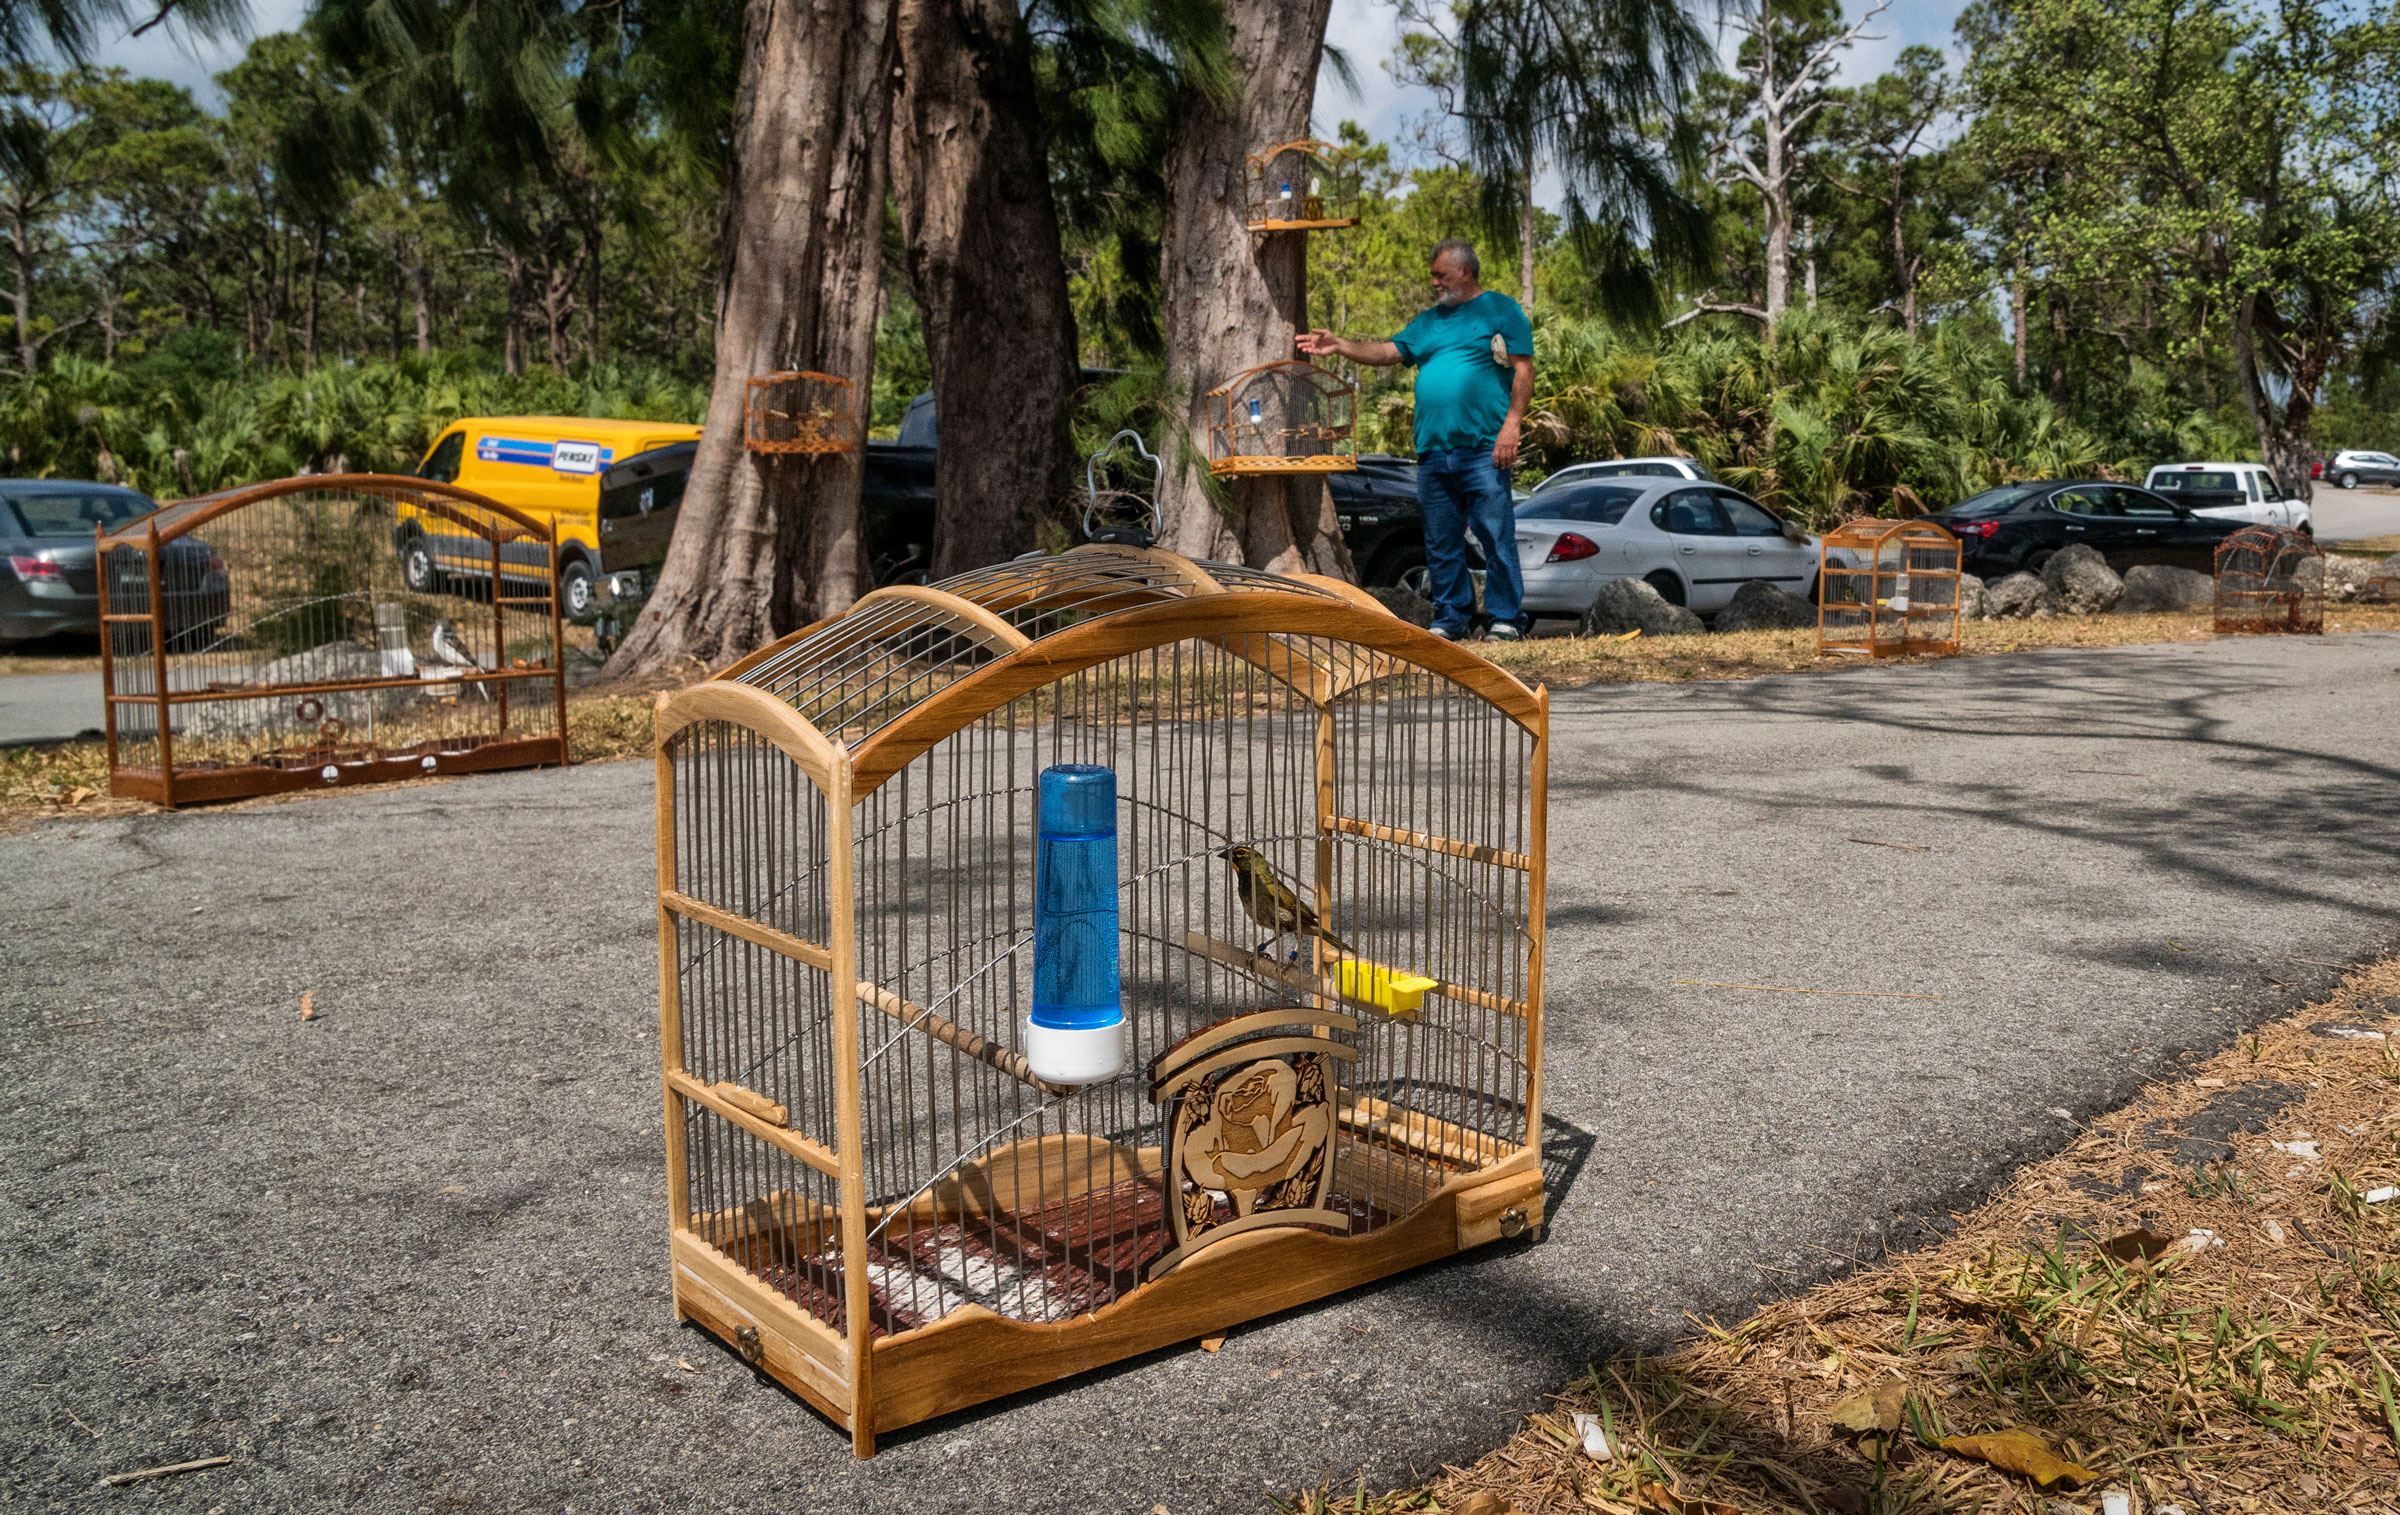 Traders gather along a road in a public park near Miami to display and sell birds. Karine Aigner